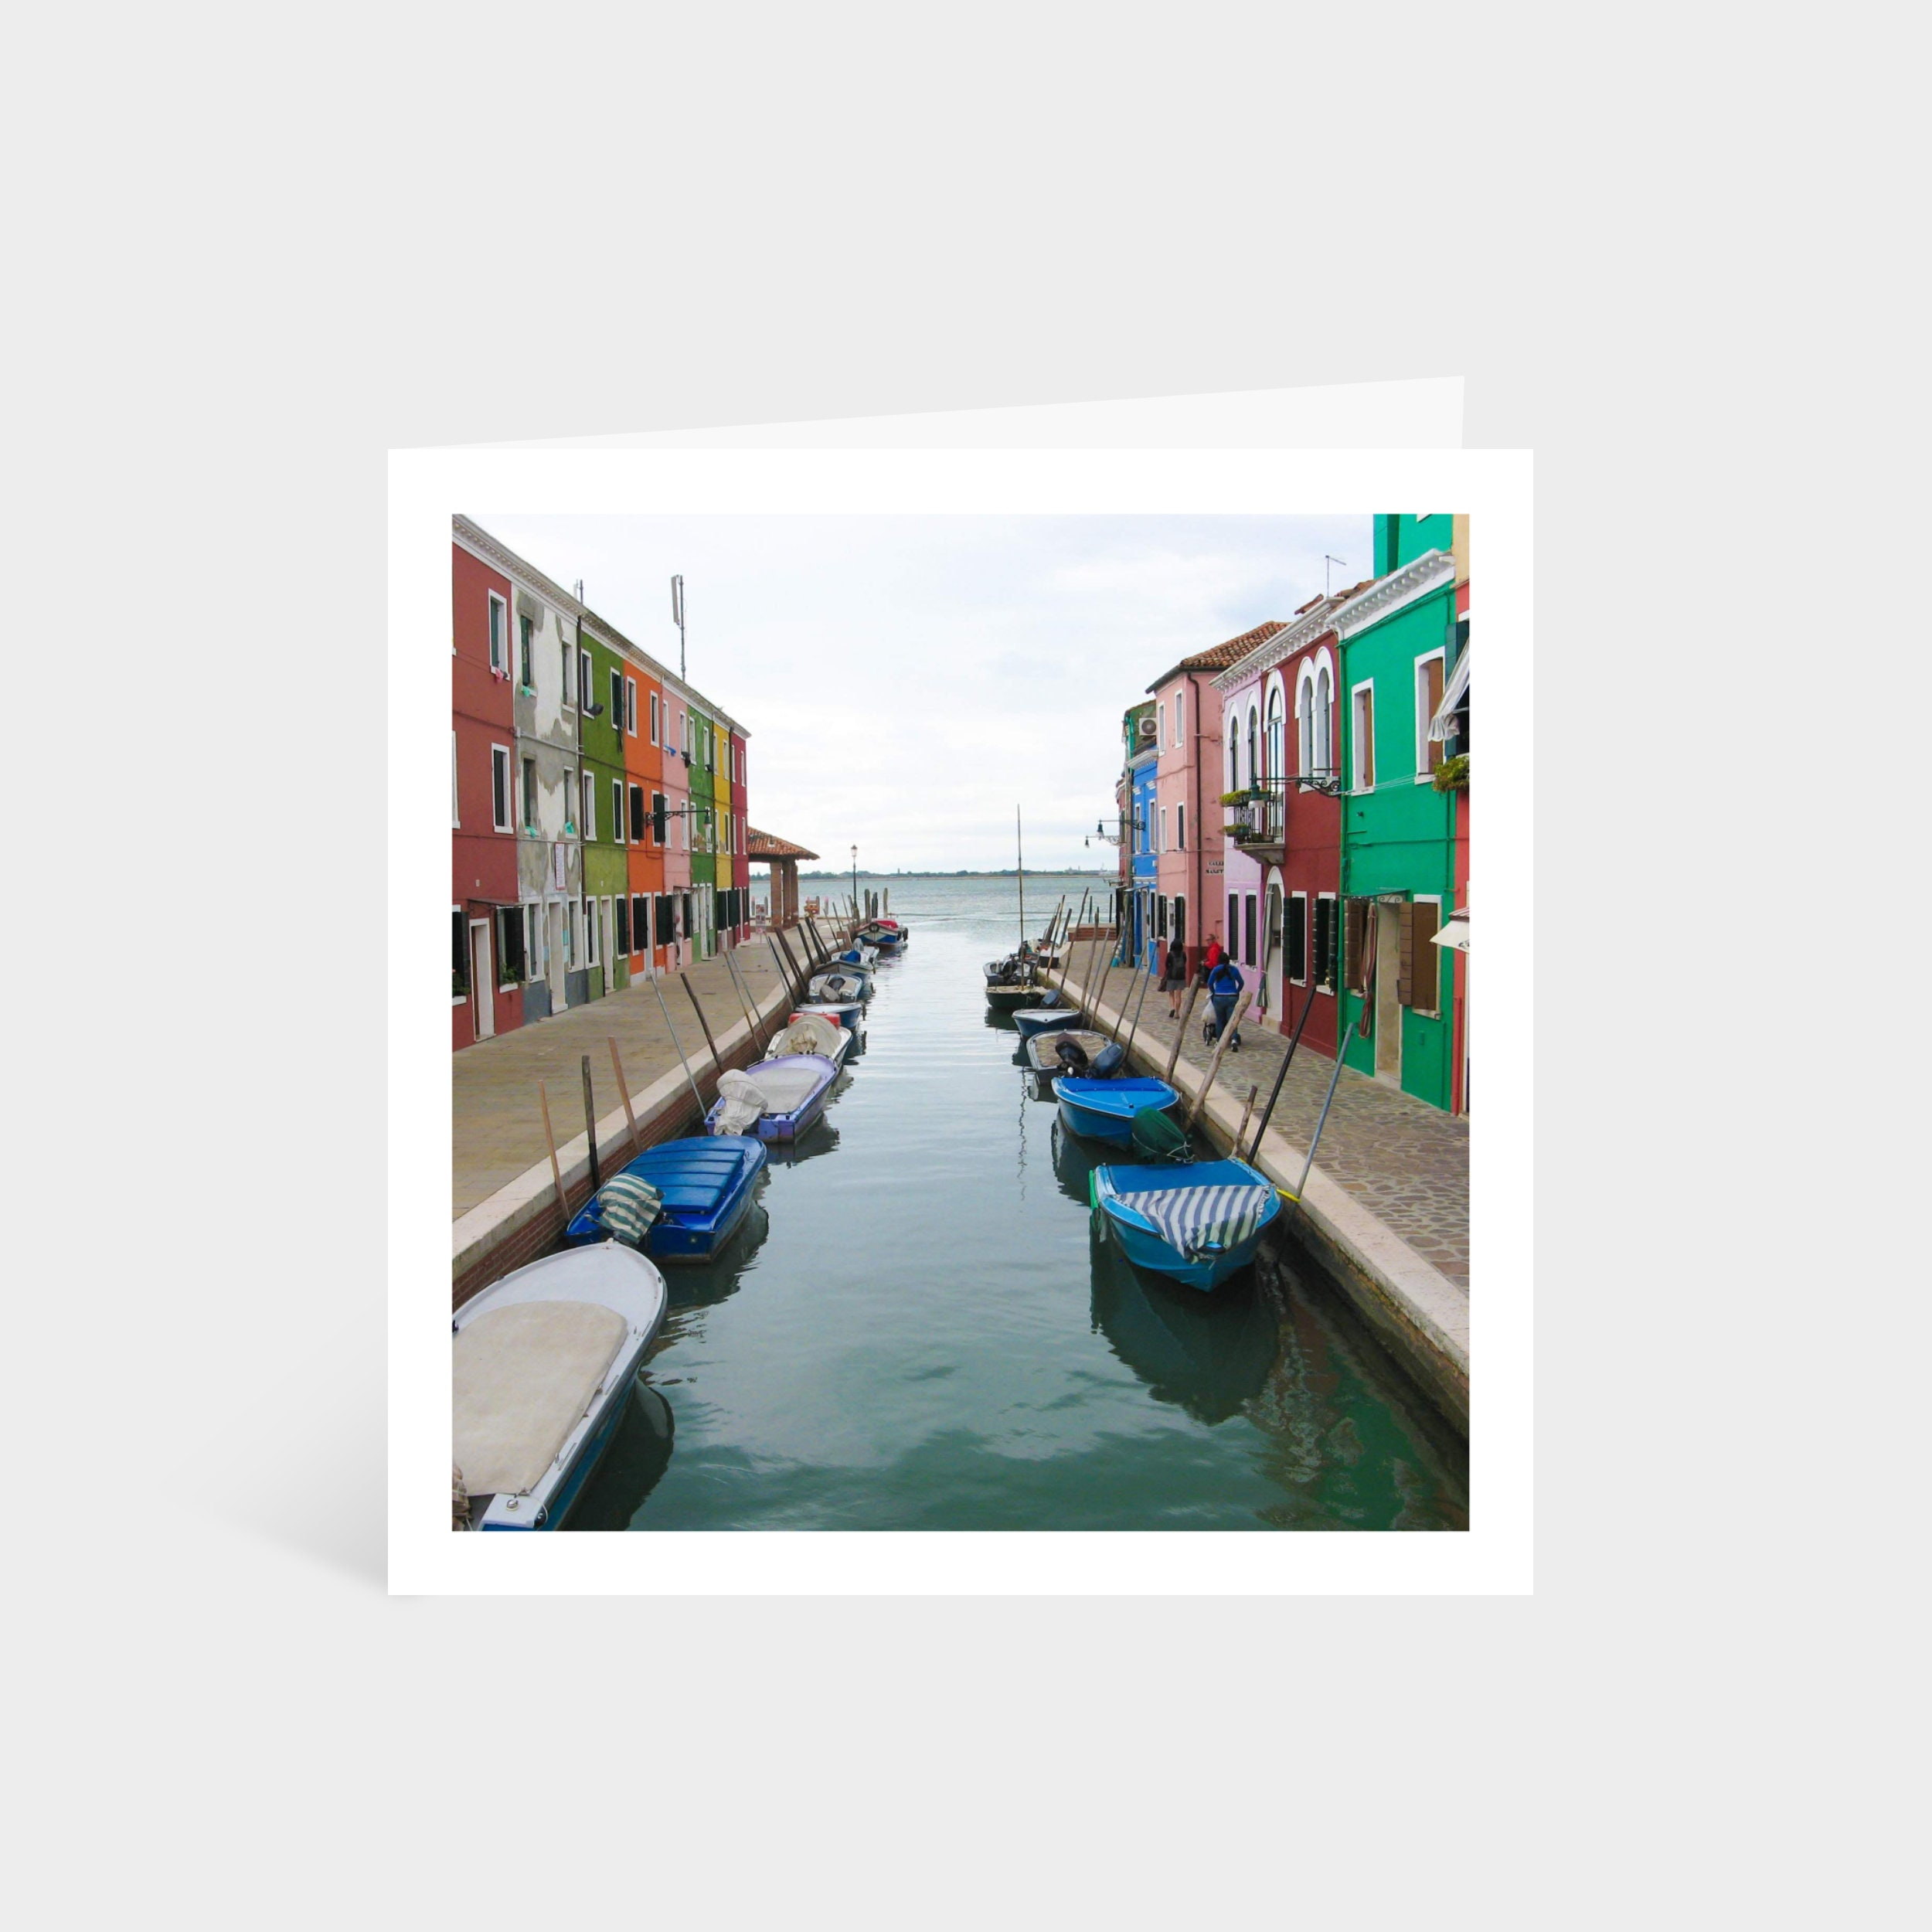 Standing square card with a photo looking down a canal street in Burano, with a rainbow of houses